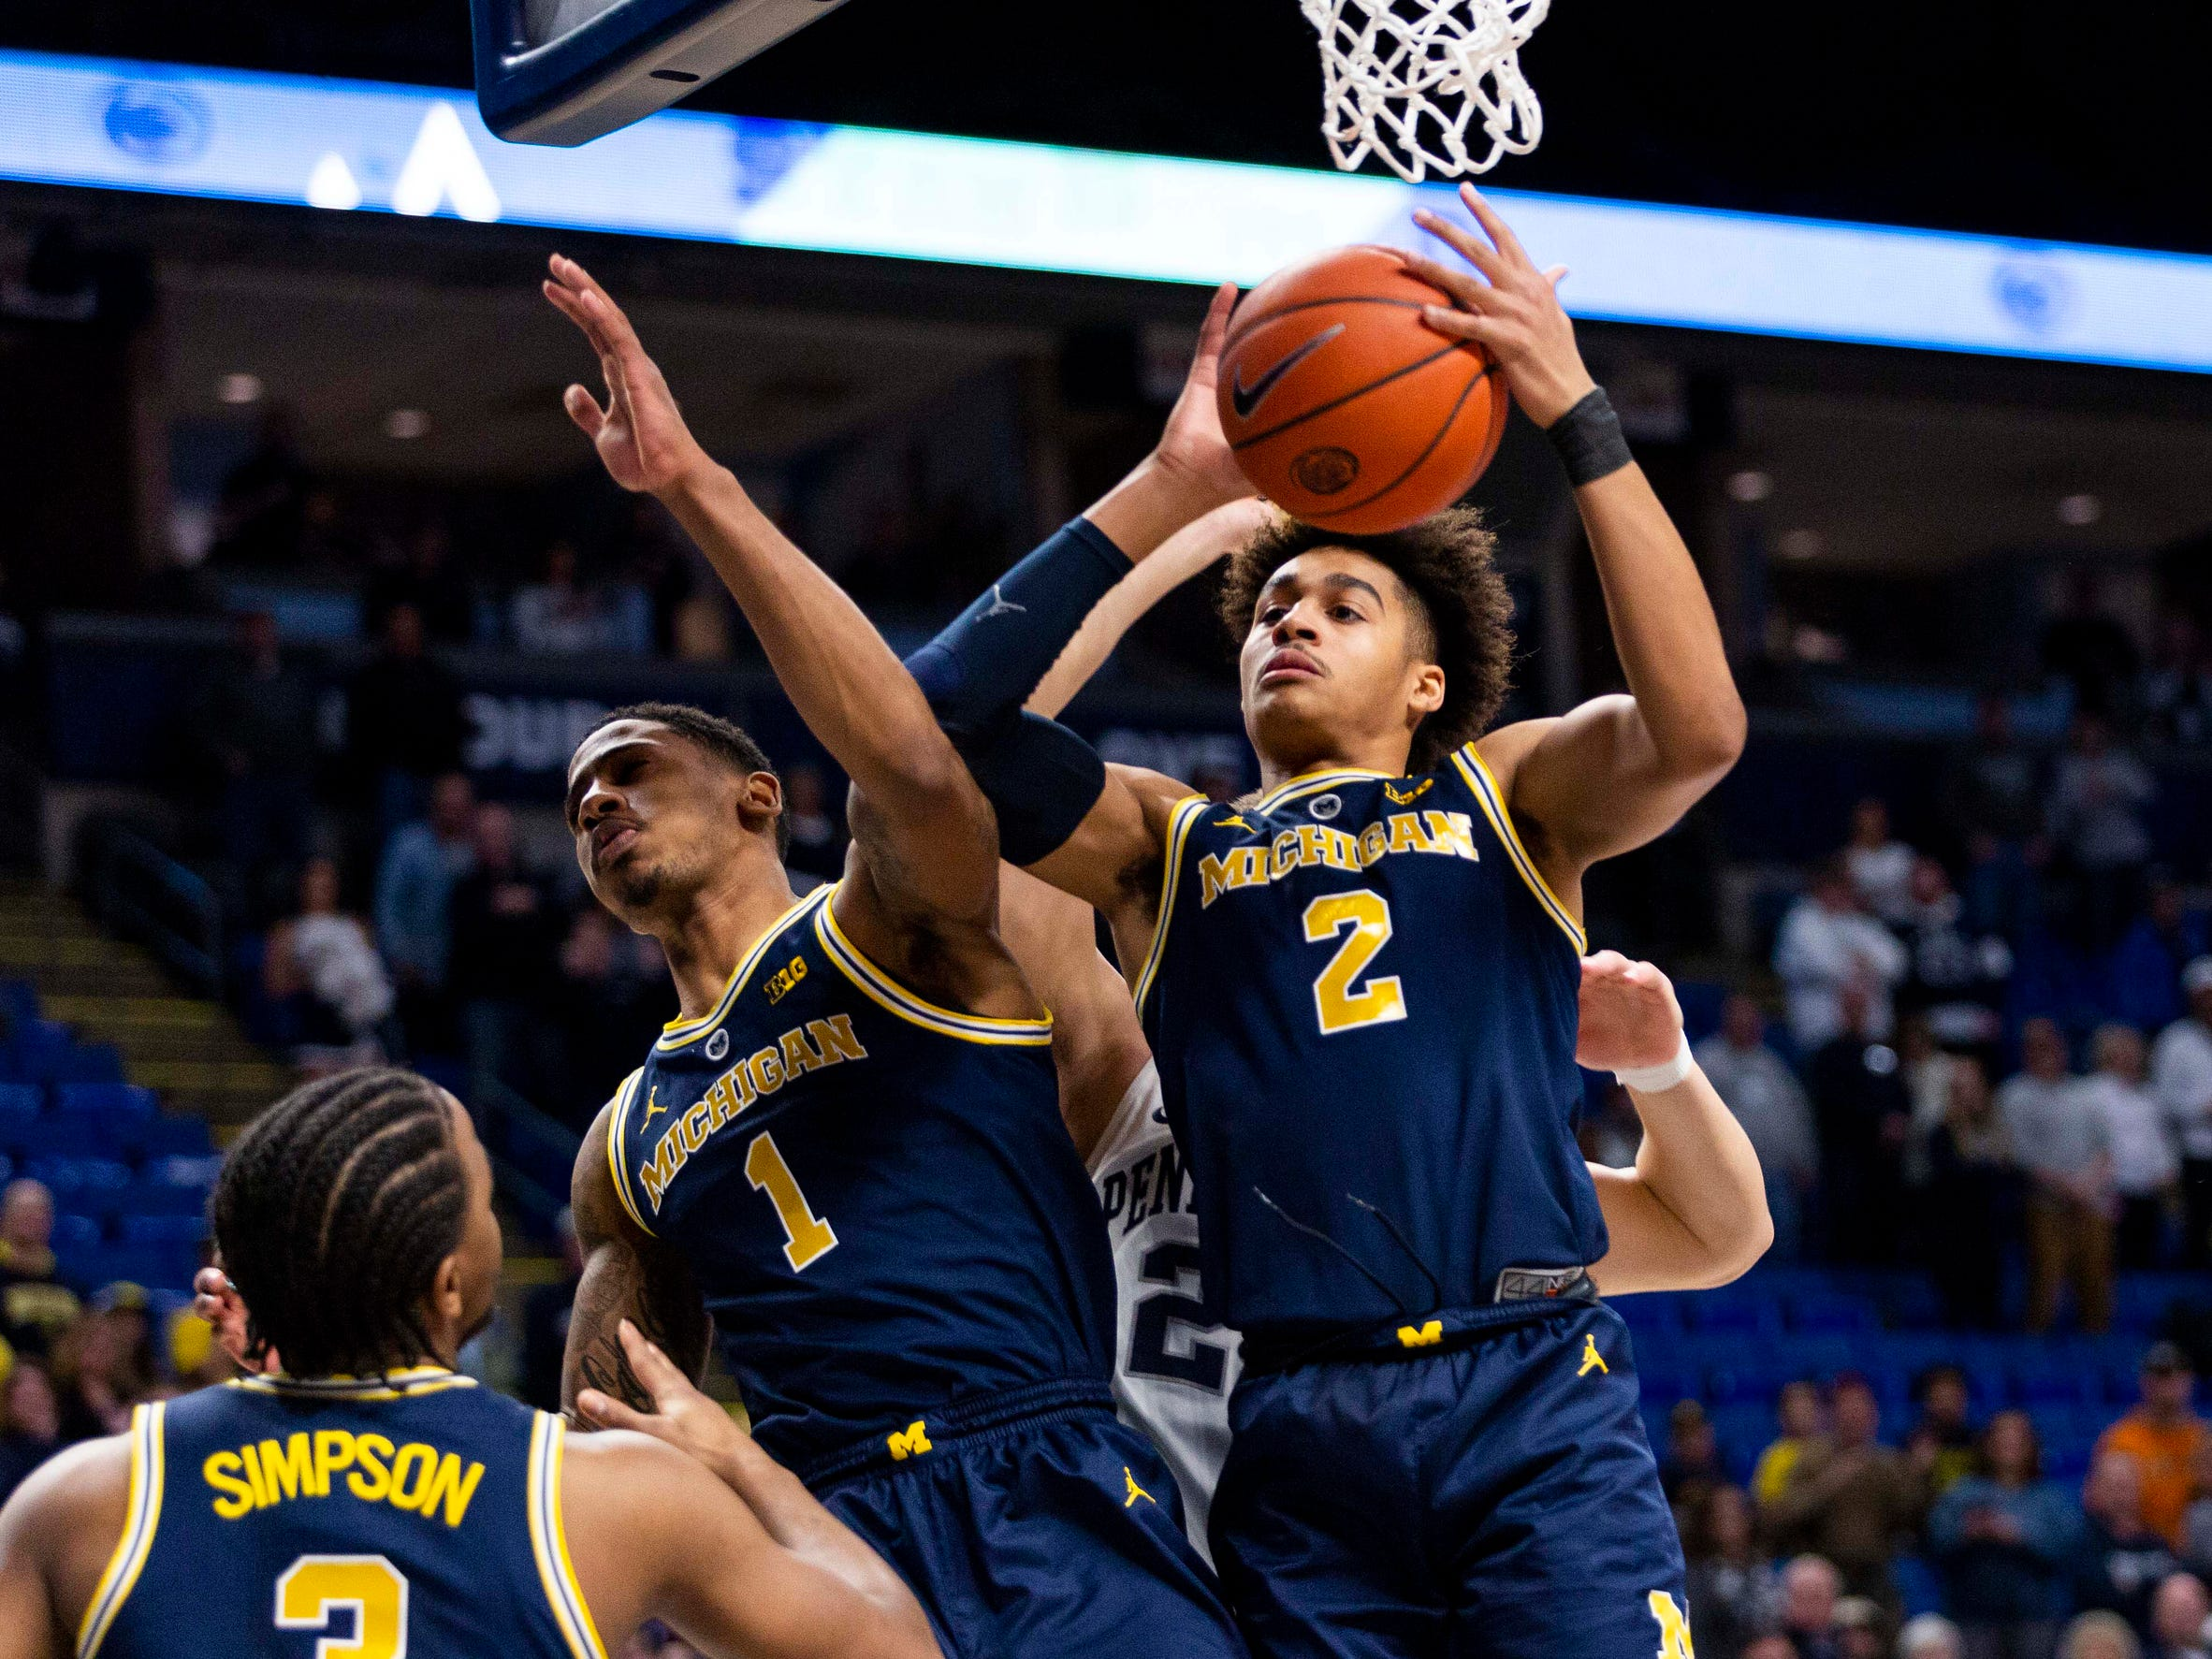 Michigan's Jordan Poole (2) rebounds during the first half against Penn State at Bryce Jordan Center, Tuesday, Feb. 12, 2019, in State College, Pa.